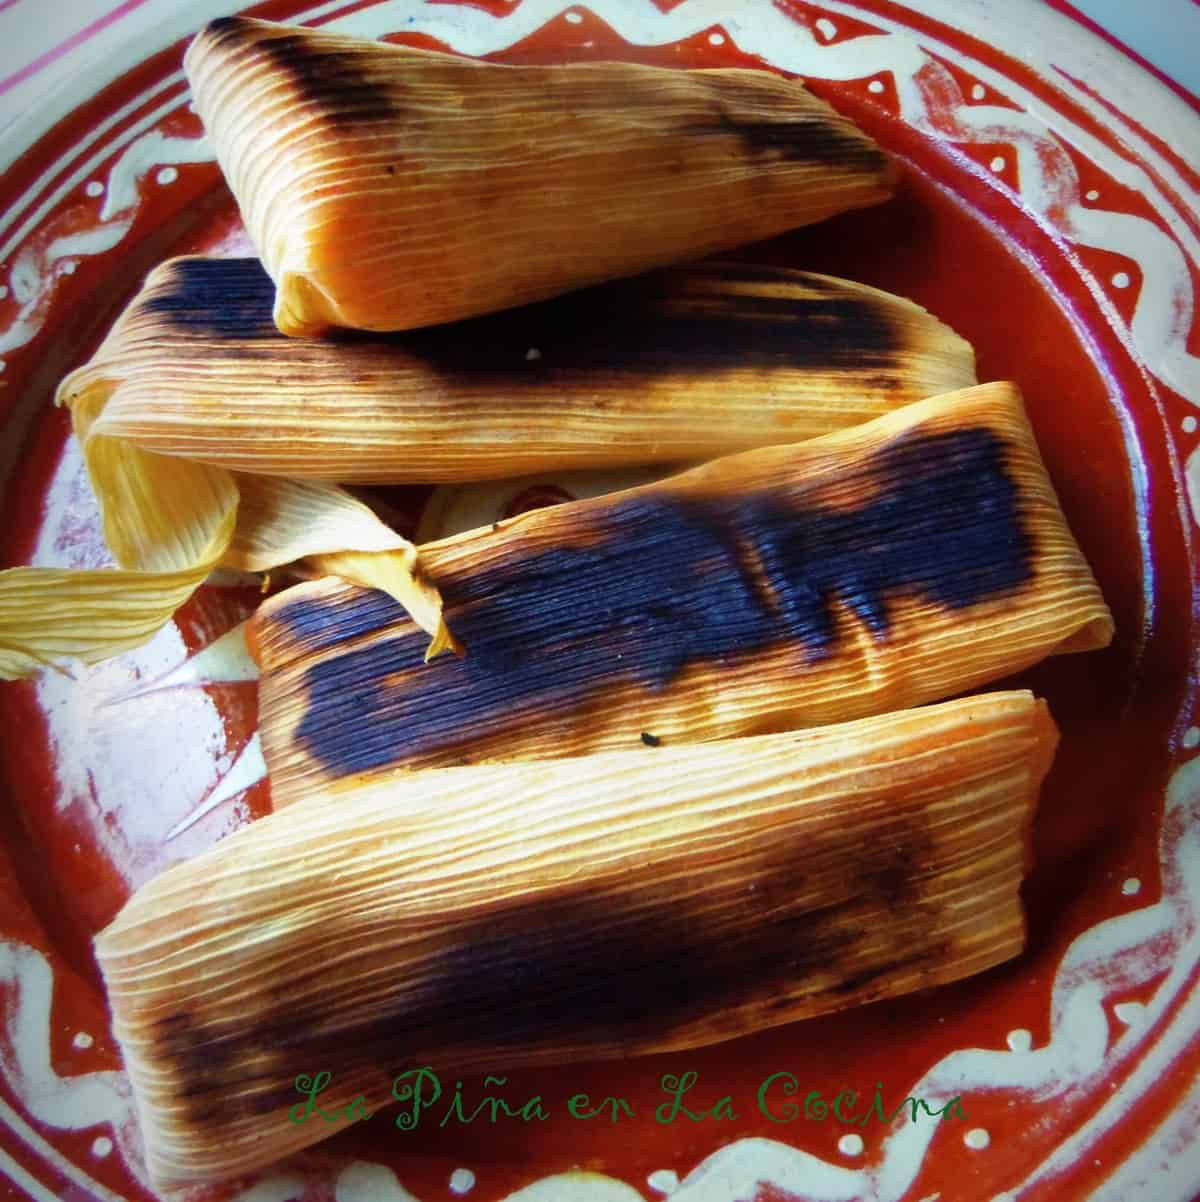 Even better than freshly steamed tamales? Charred tamales on the comal the next morning.